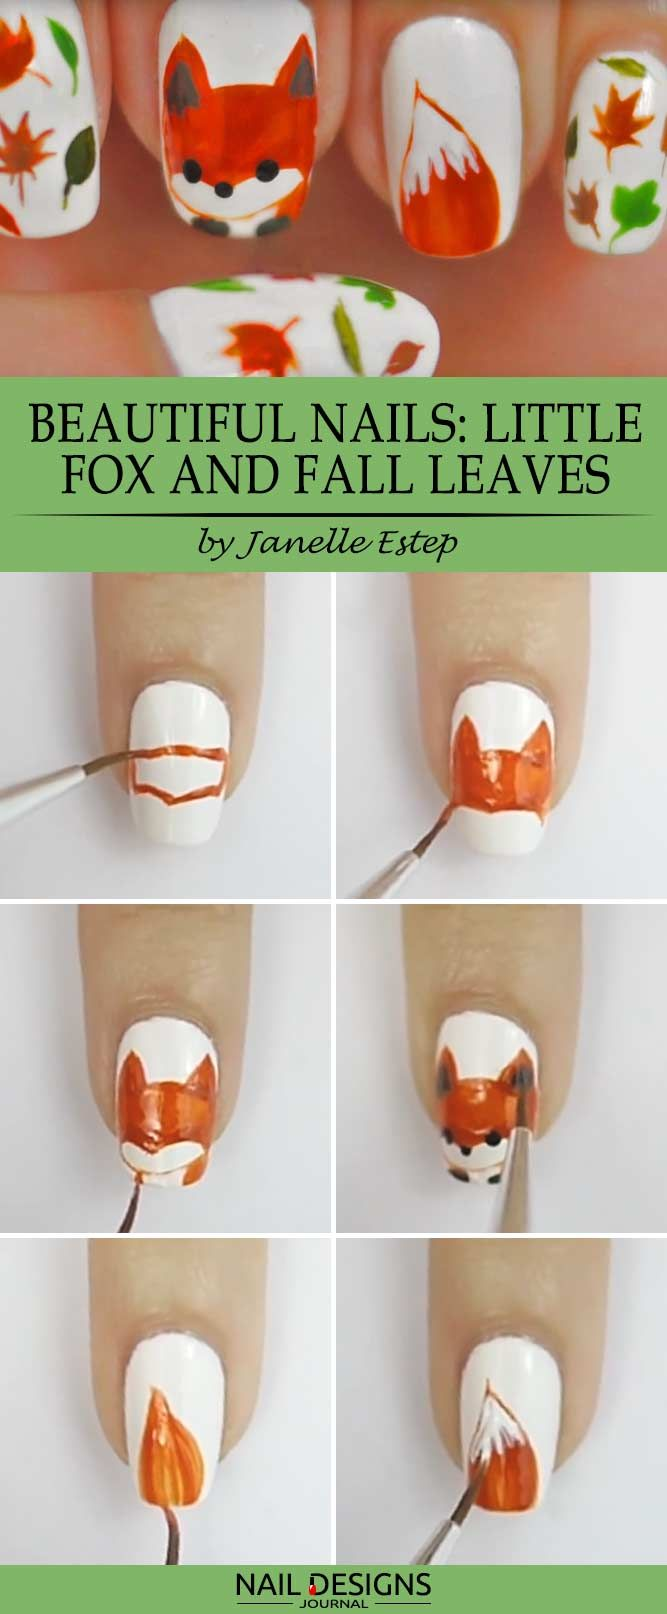 Foxy Nails: The Hottest Trend of This Fall | Diseños de uñas ...